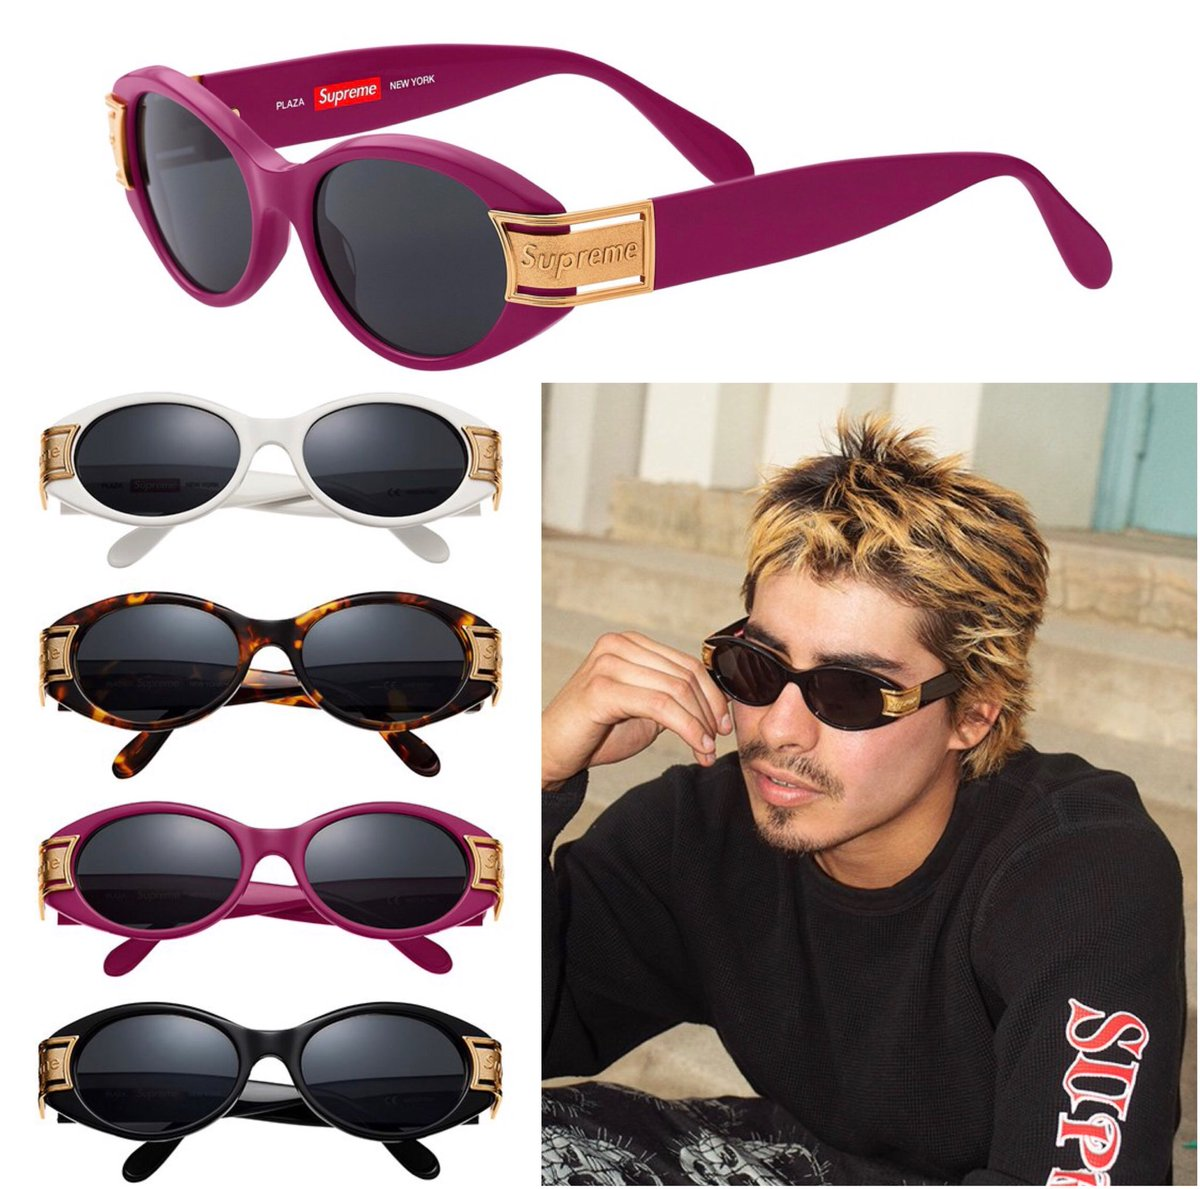 2733737b23e Supreme Sunglasses Dropping Tomorrow In 5 Different Styles  138 Astro Frames   158 Booker Frames  178 Exit Frames  178 Plaza Frames  188 Royale Frames  Check ...